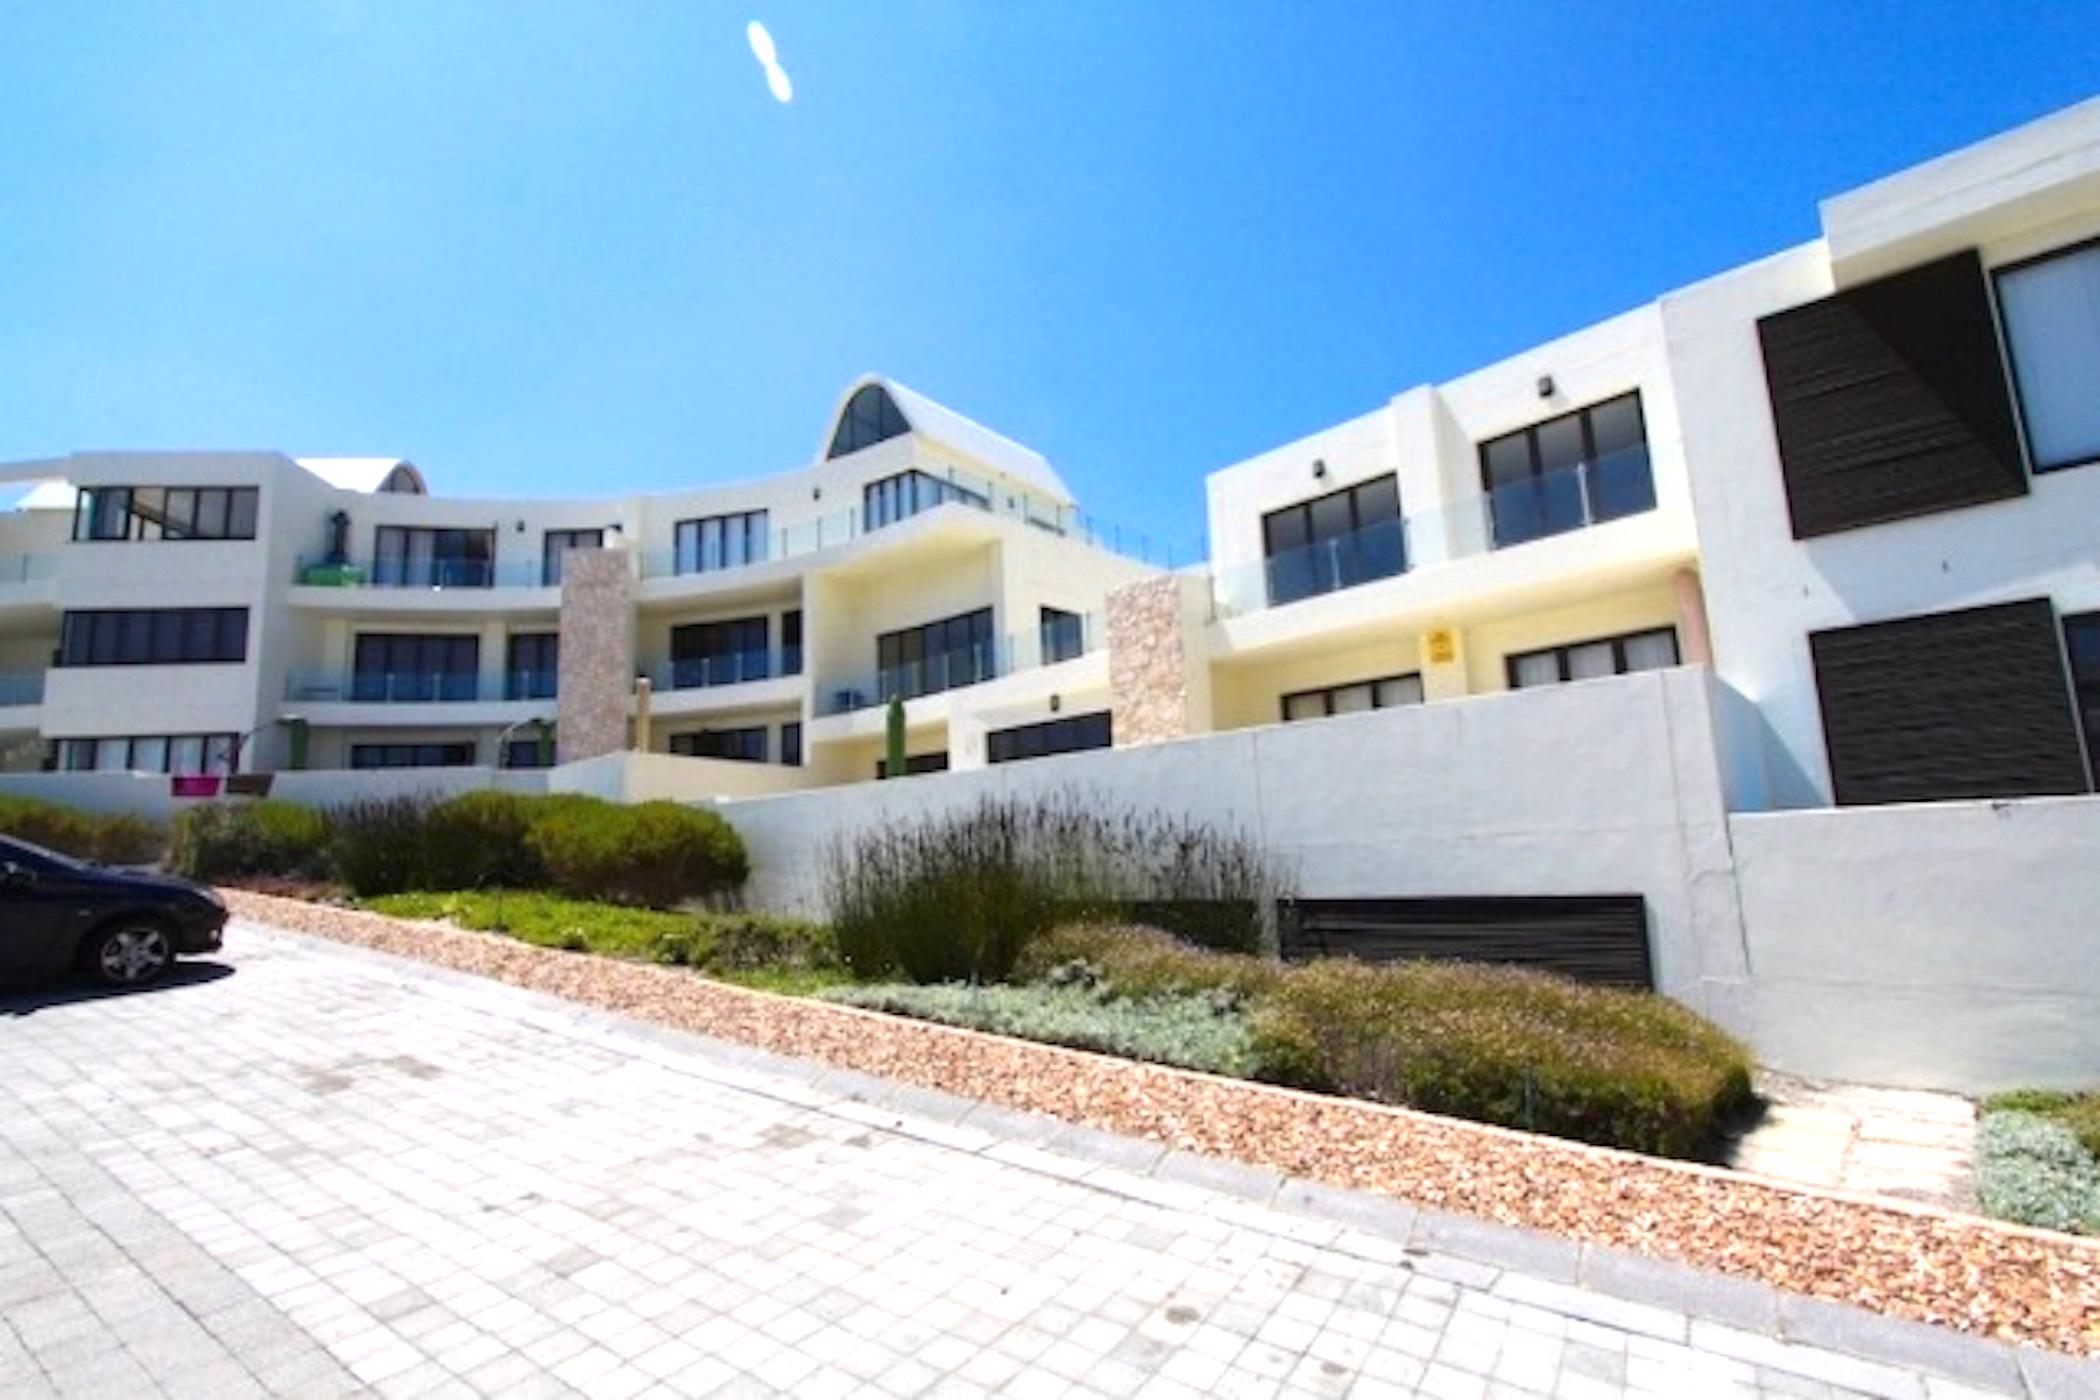 https://listing.pamgolding.co.za/images/properties/201903/1280796/H/1280796_H_1.jpg